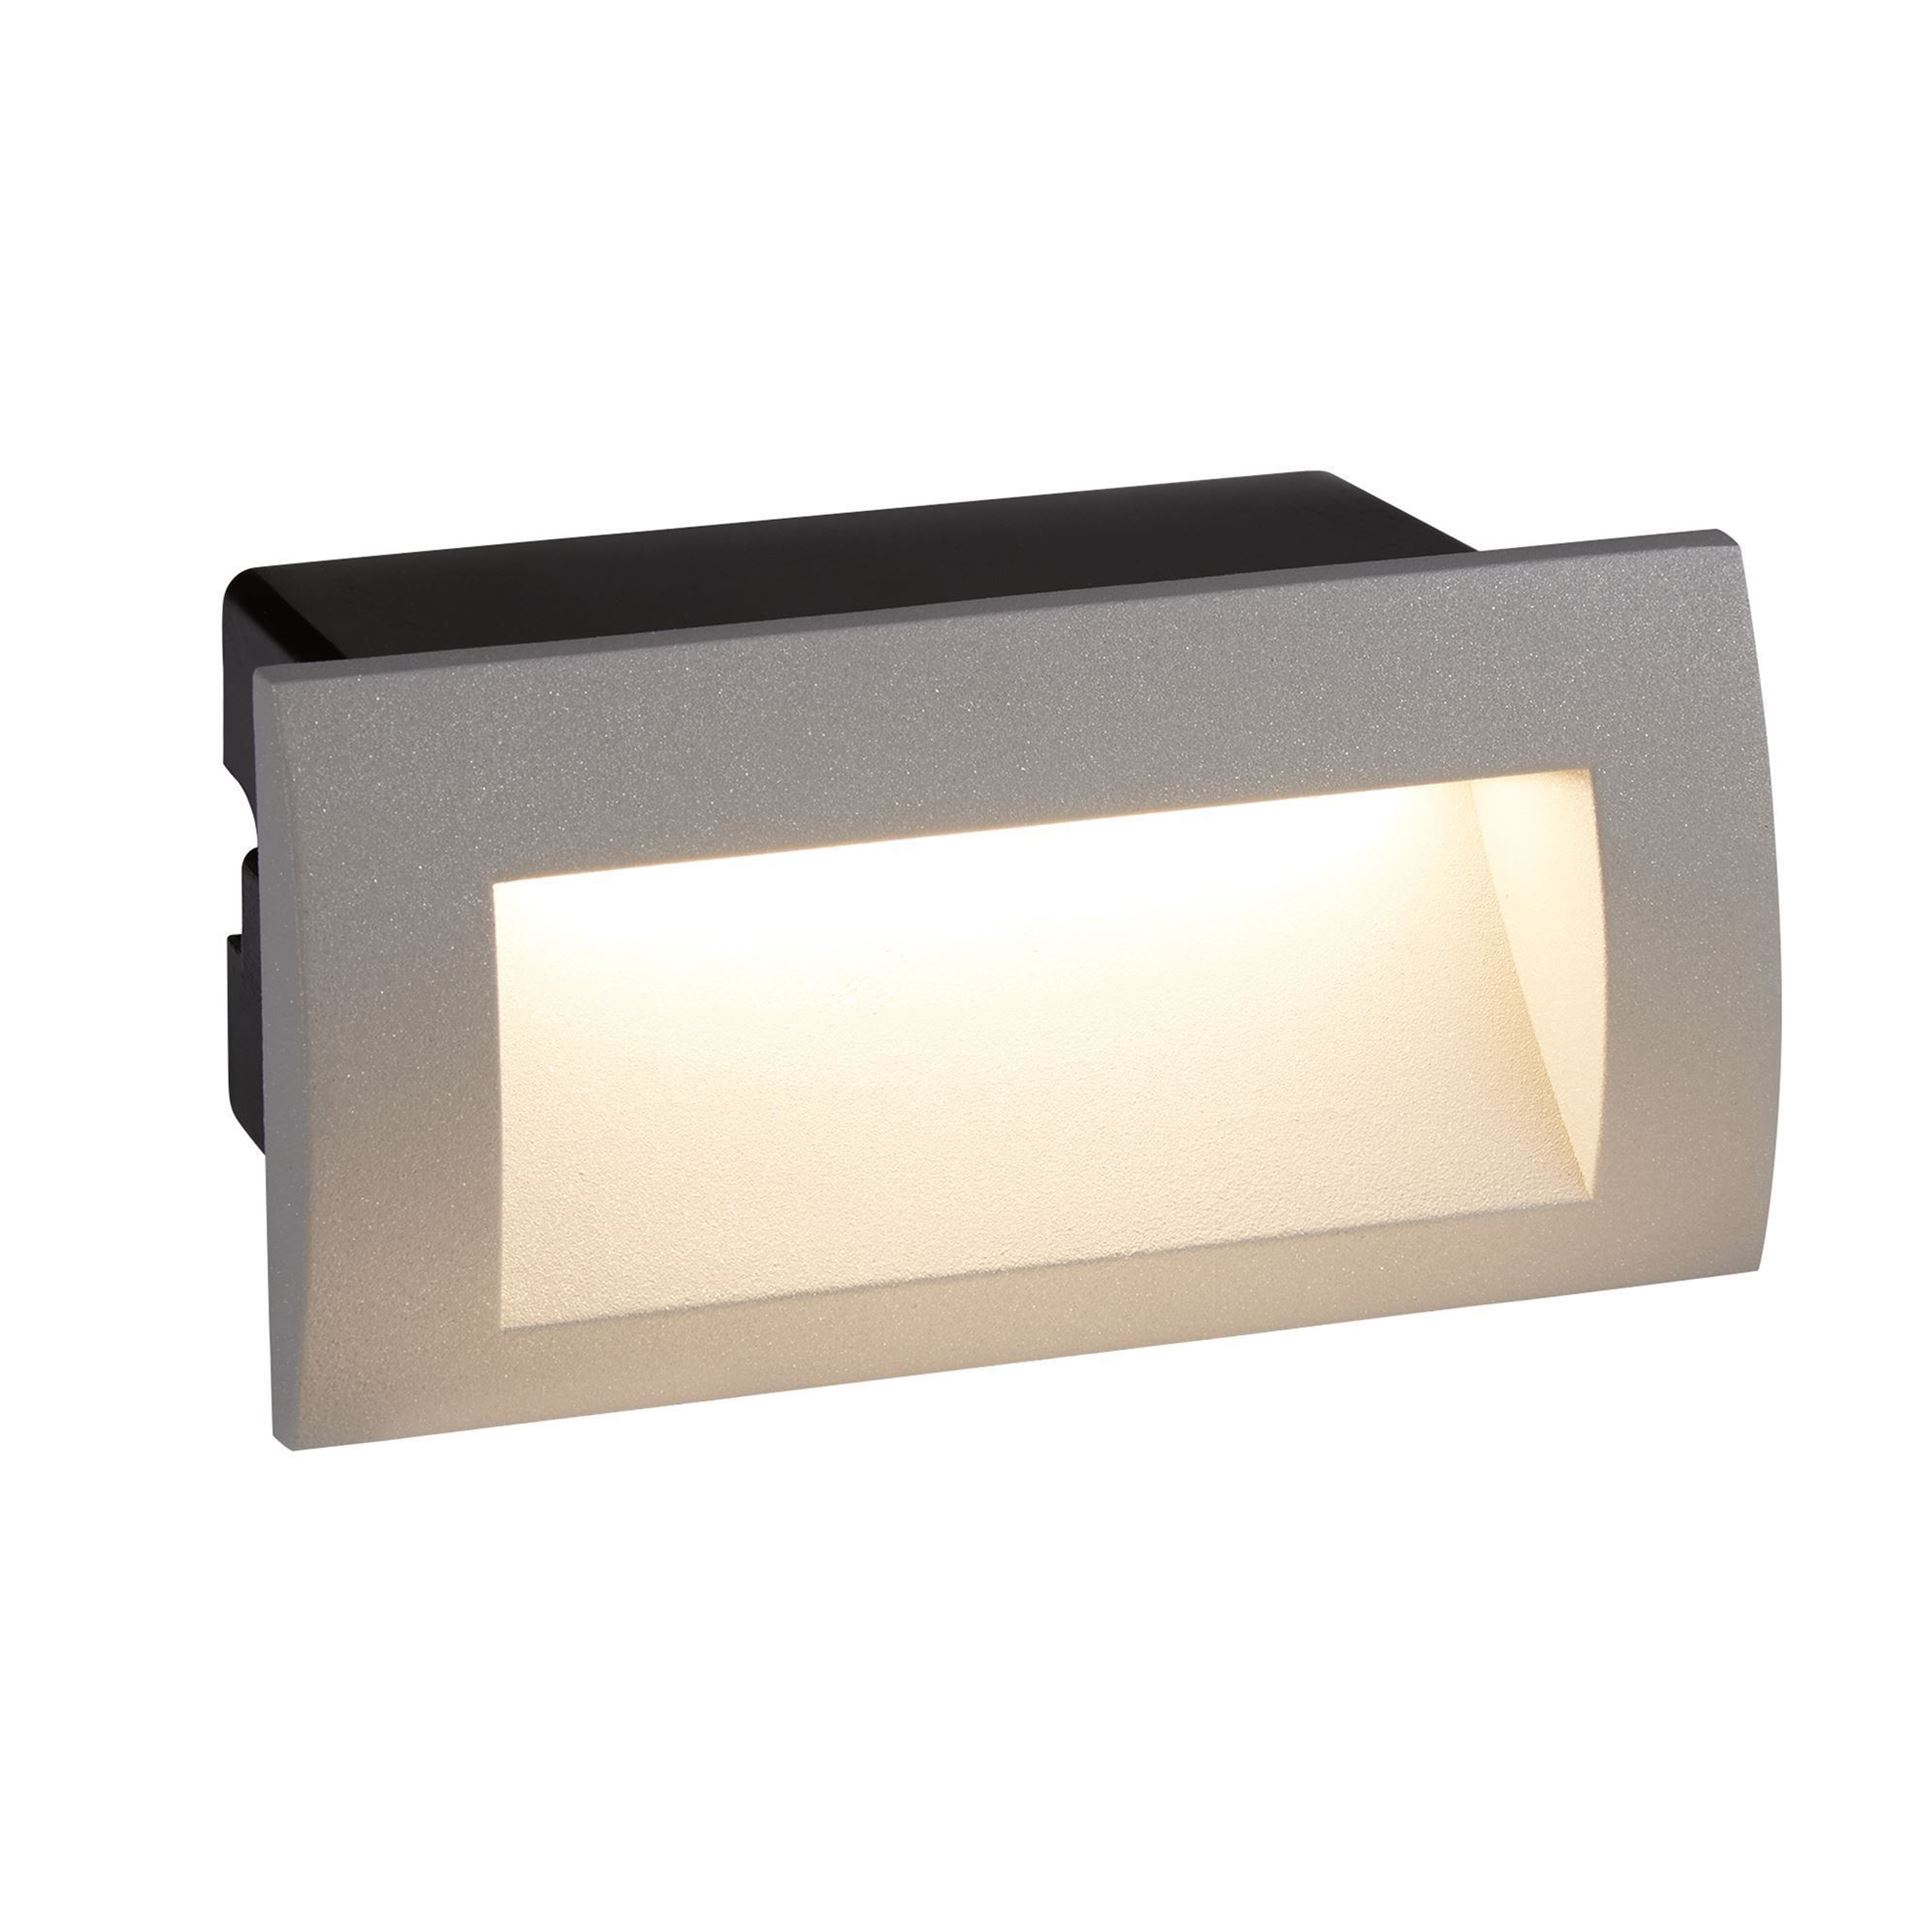 DIE CAST ALUMINIUM LED INDOOR/OUTDOOR RECESSED RECTANGLE, WB GREY 0662GY